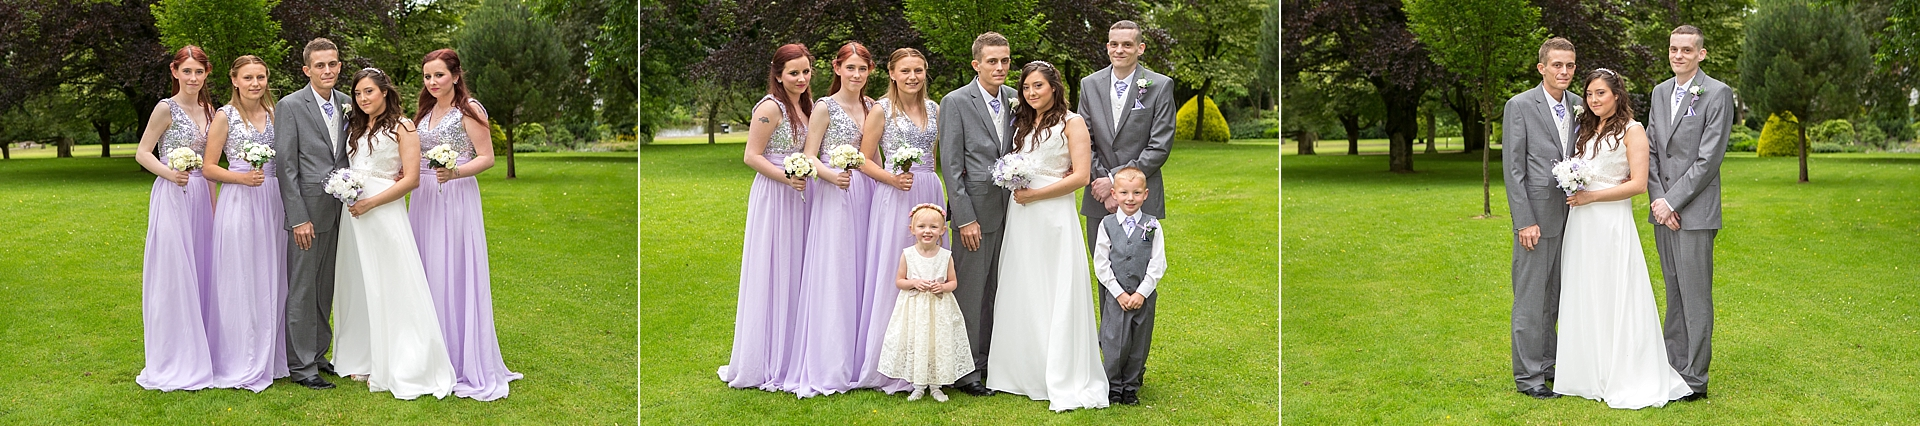 wedding photo stoke on trent 12.jpg